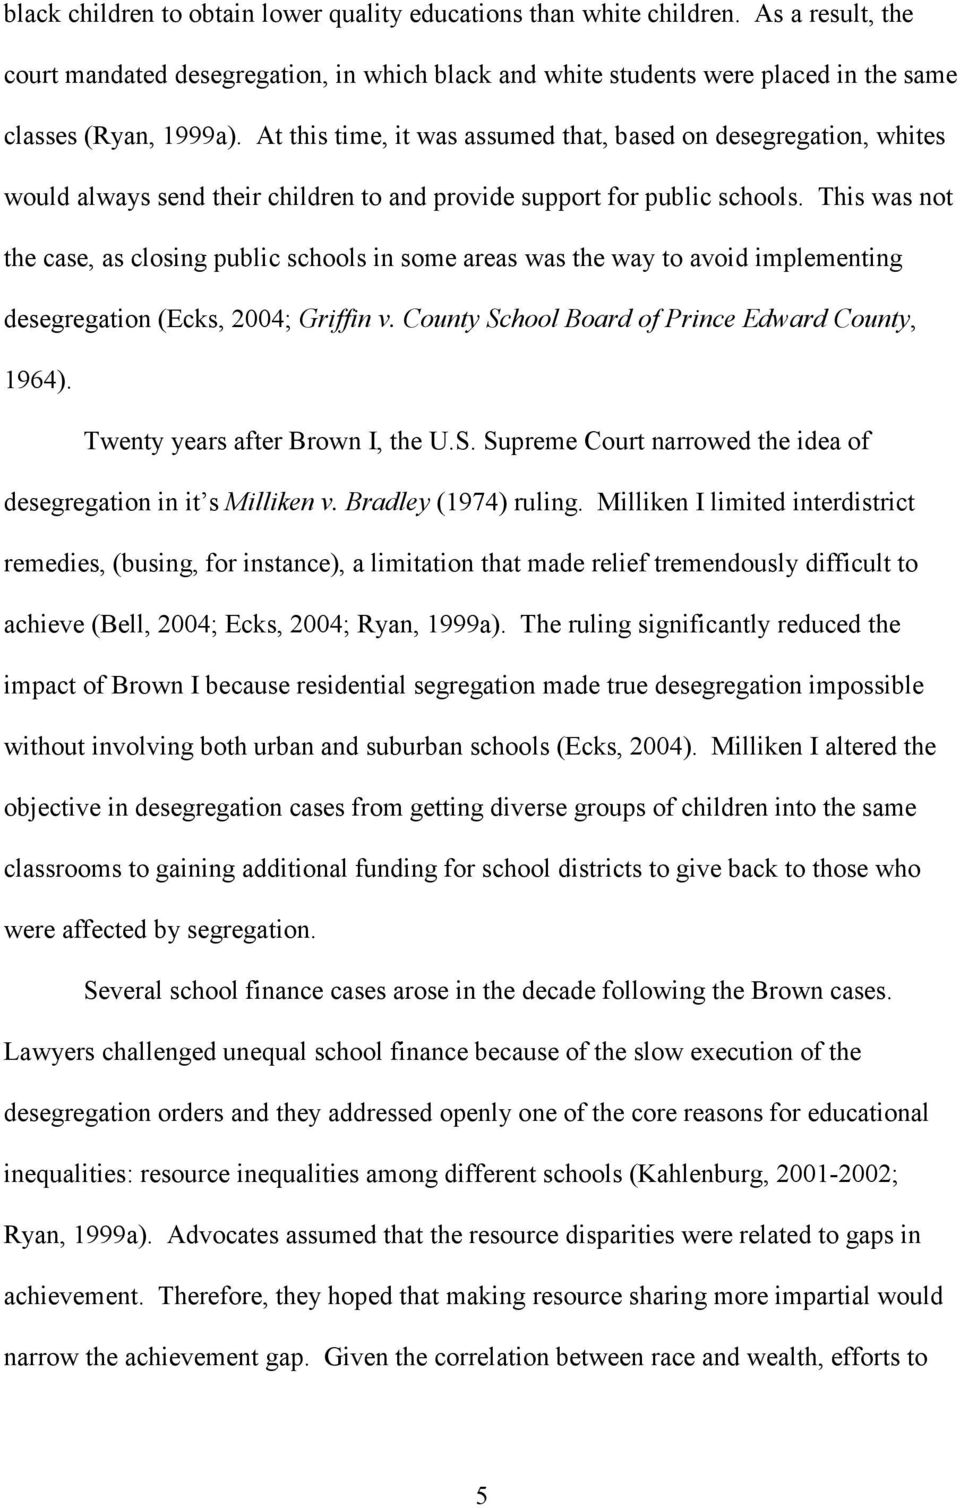 This was not the case, as closing public schools in some areas was the way to avoid implementing desegregation (Ecks, 2004; Griffin v. County School Board of Prince Edward County, 1964).